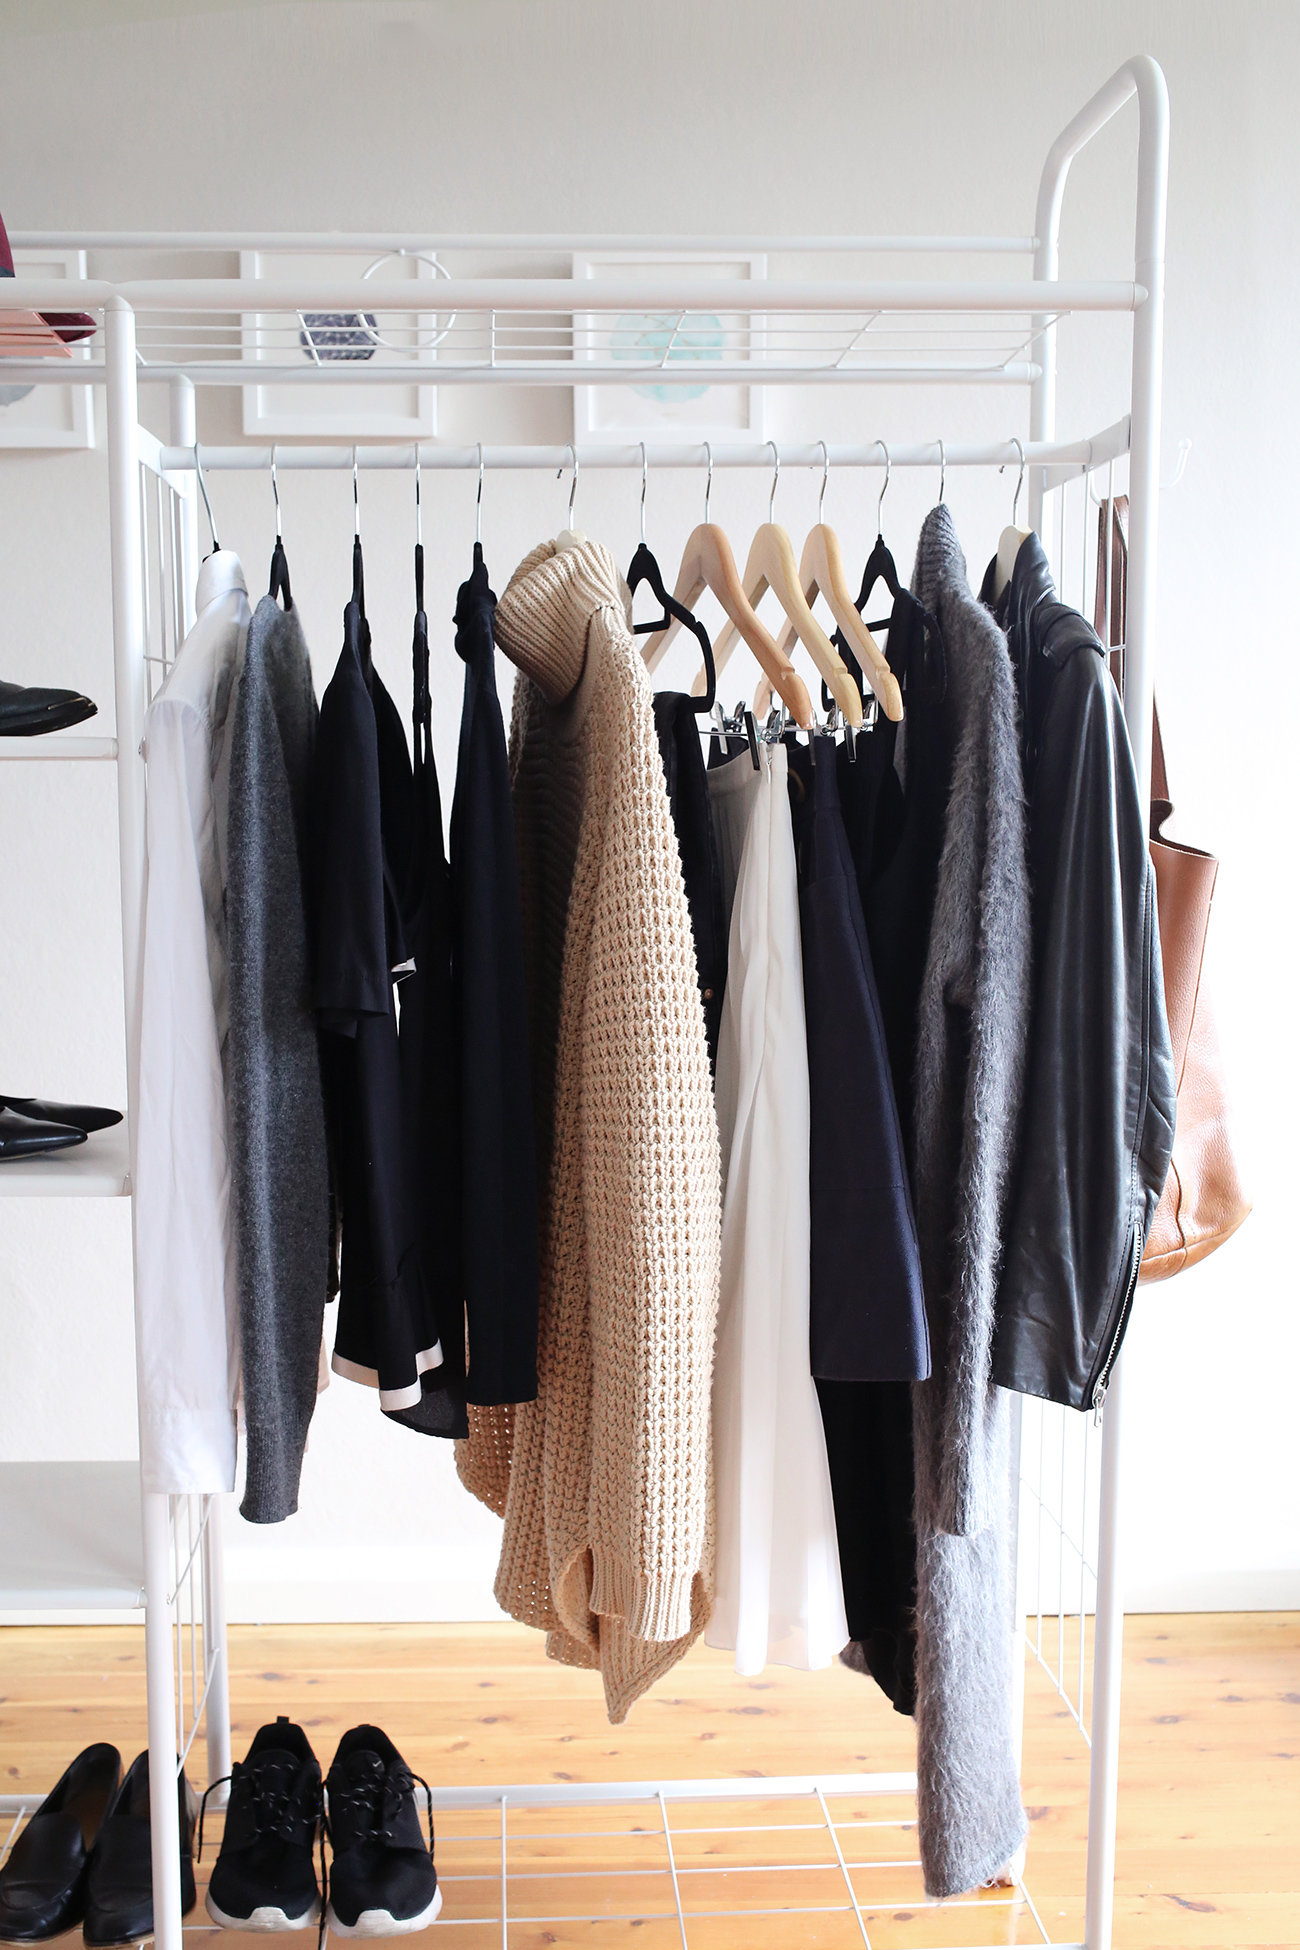 Why Build A Capsule Wardrobe?